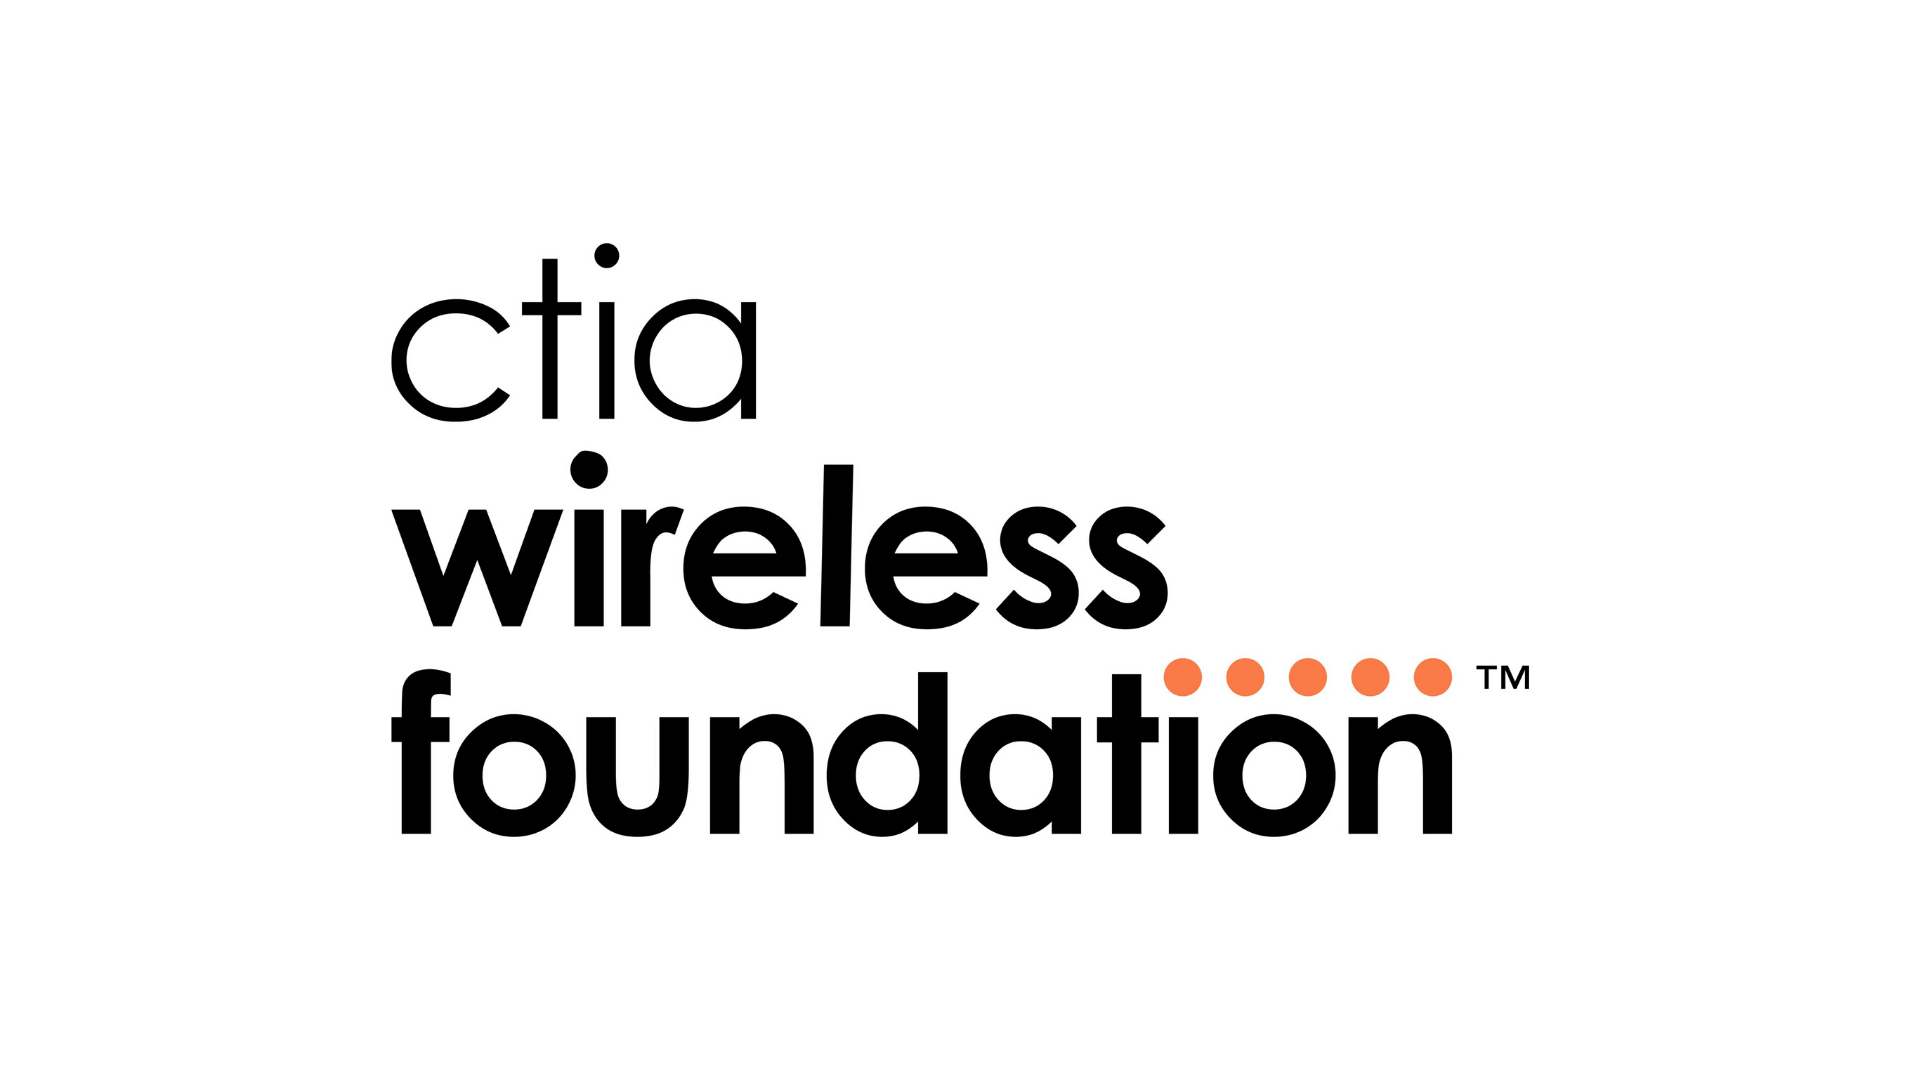 CTIA Wireless Foundation